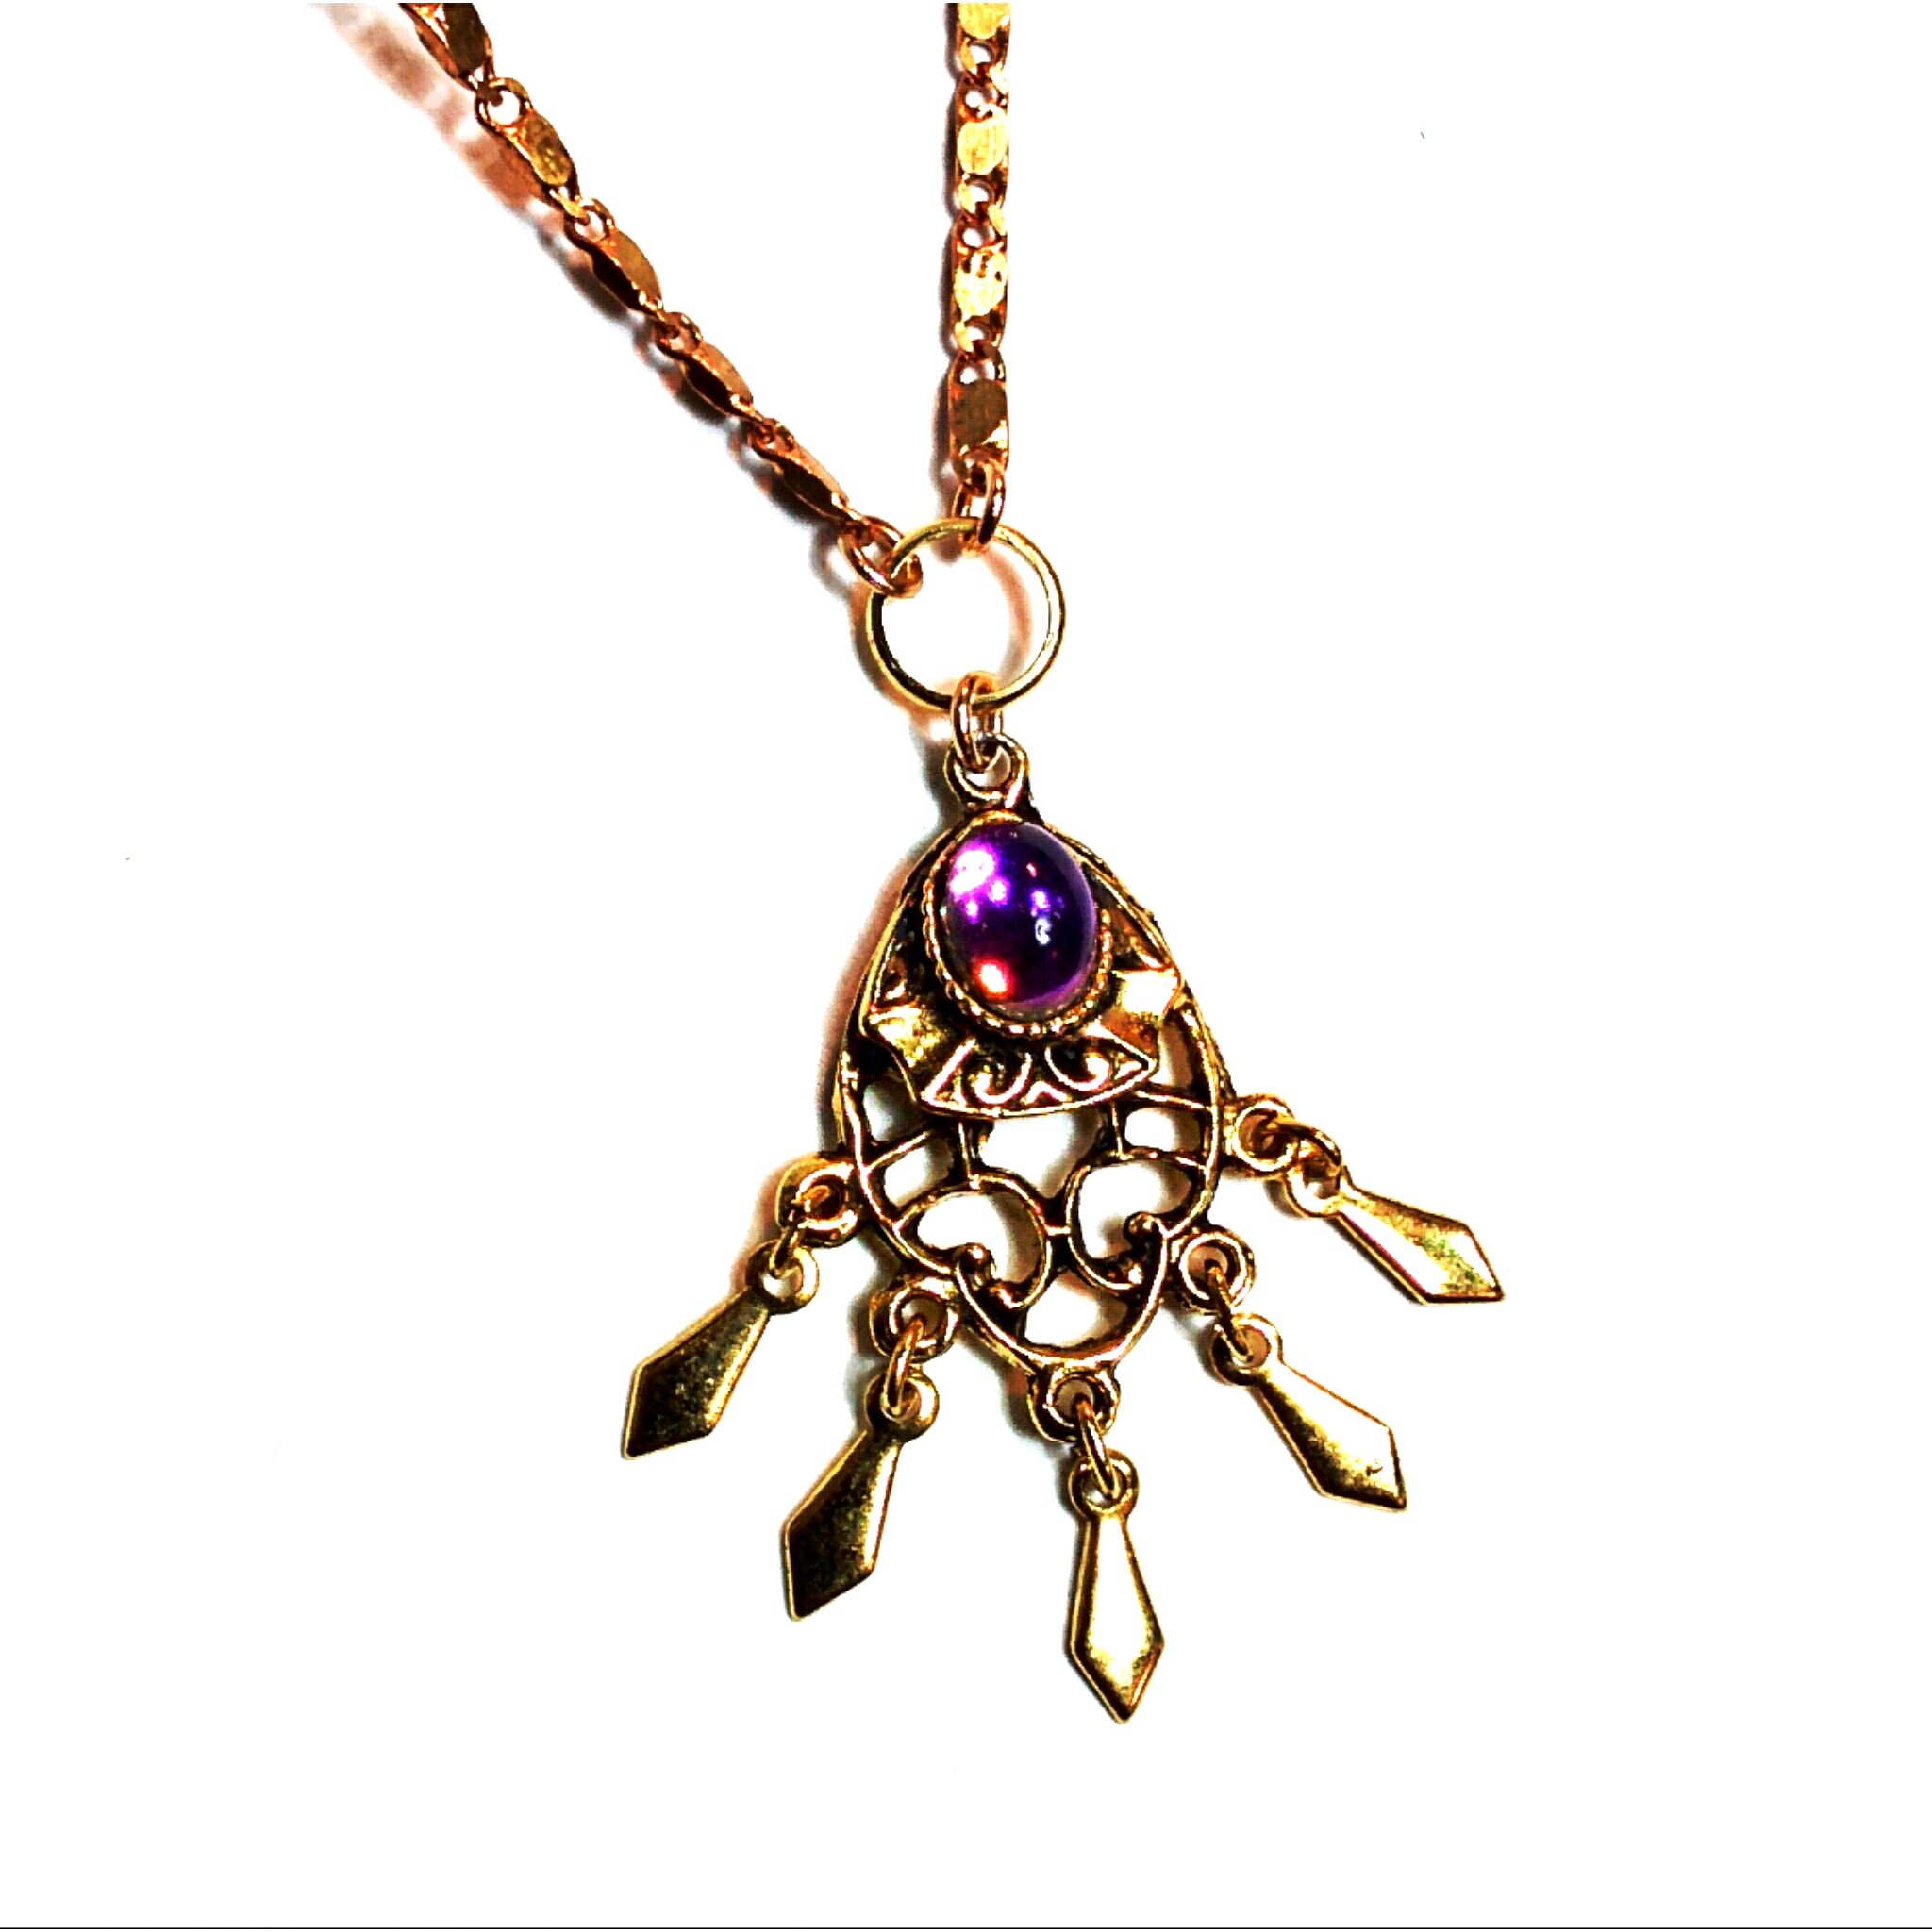 Beautiful vintage pendant with purple stone and fringe